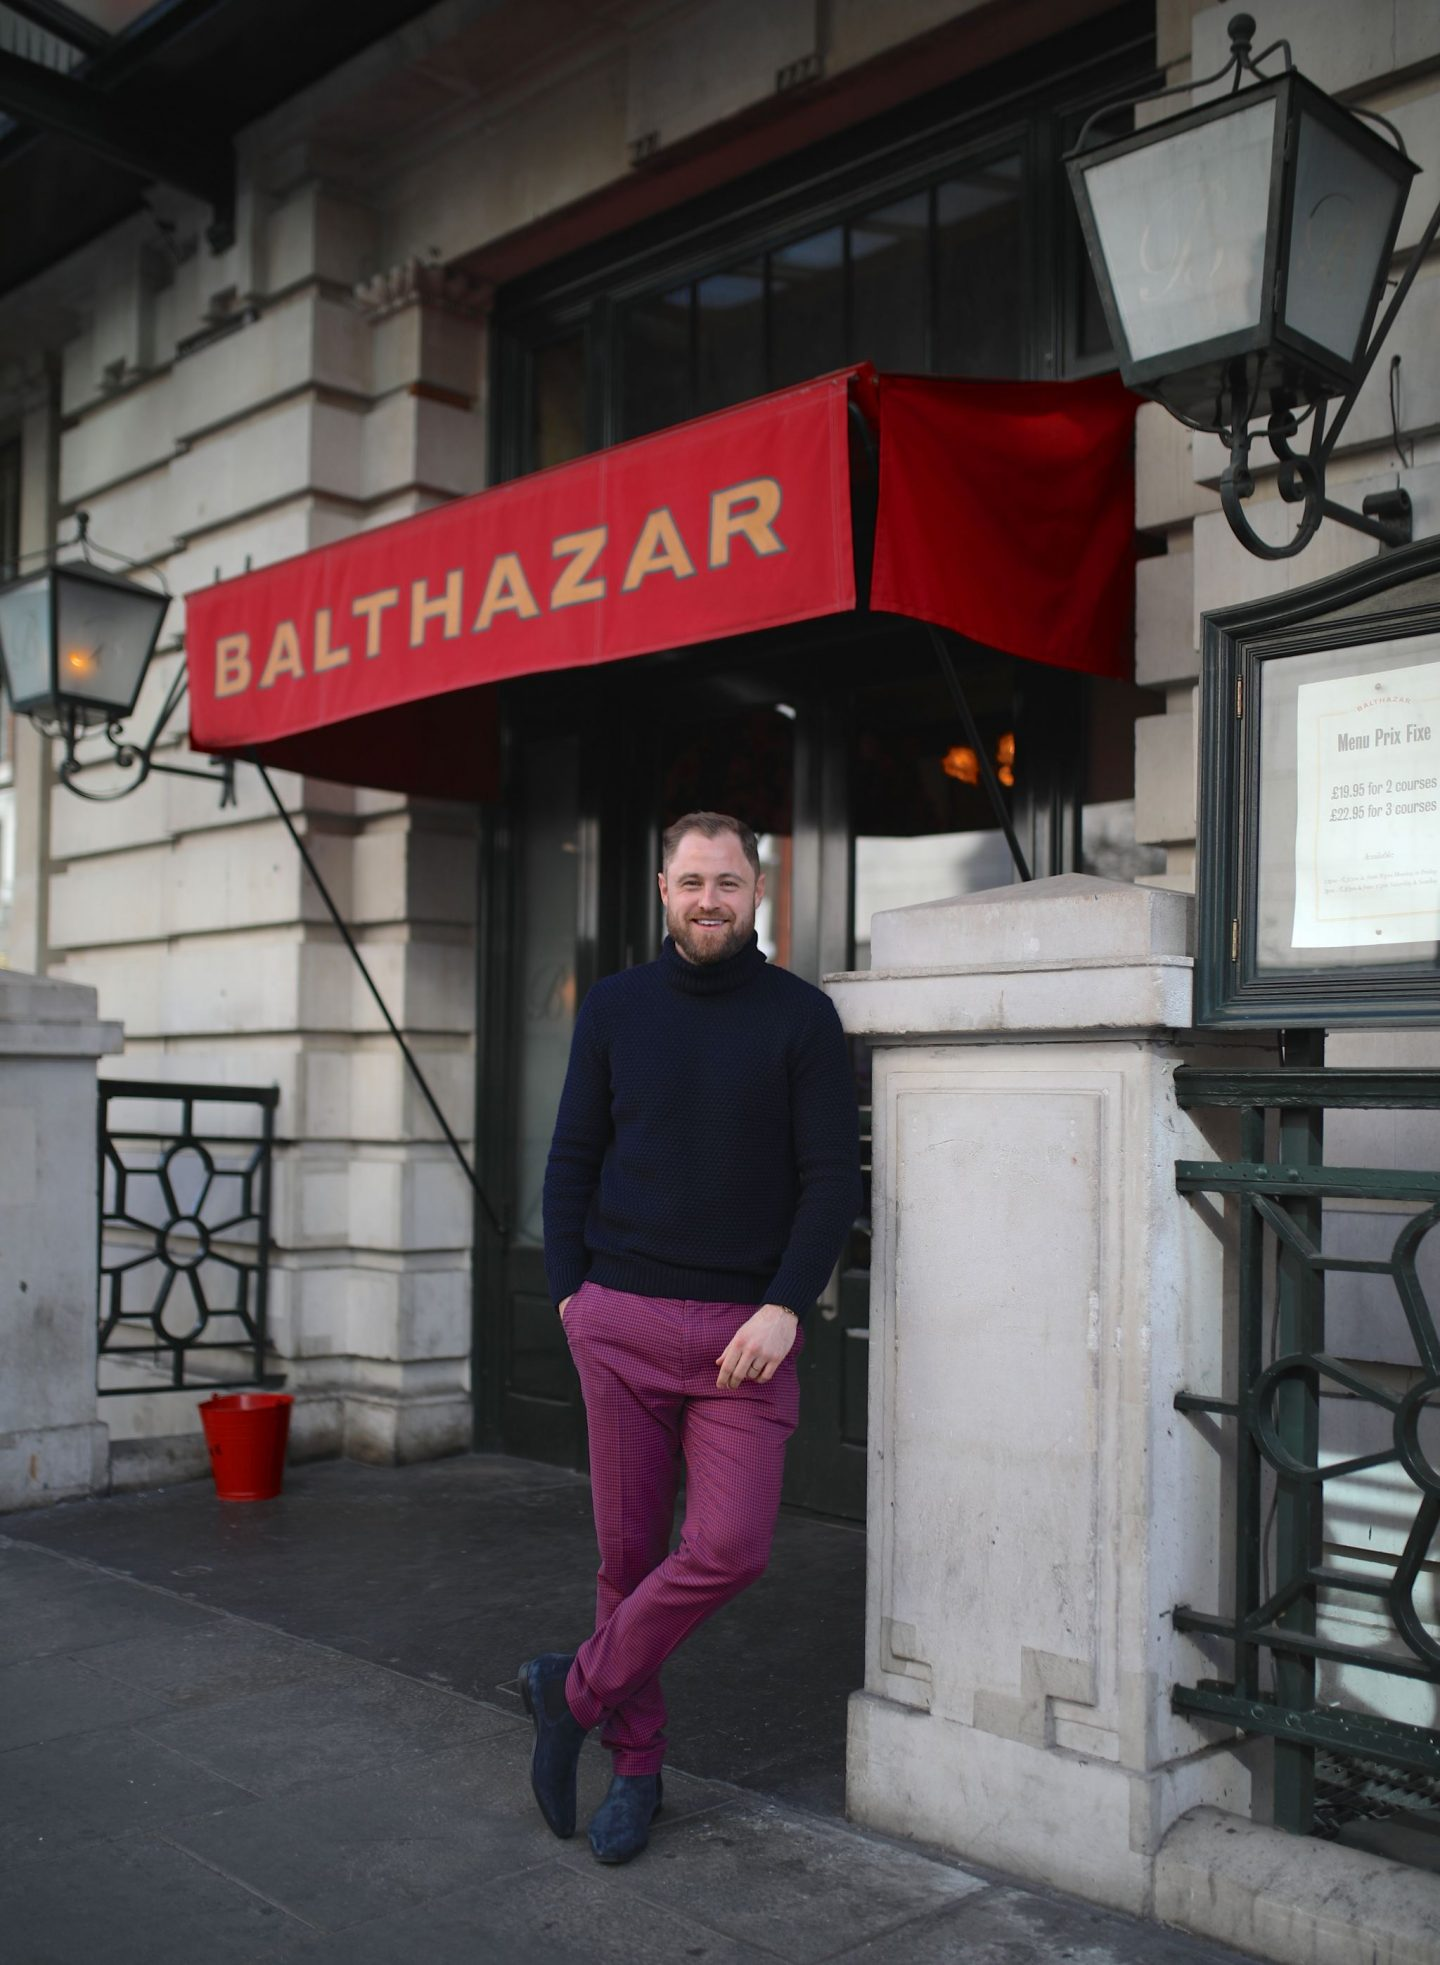 Katie Heath, Kalanchoe, Lunch at Baltazar Restaurant in Covent Garden